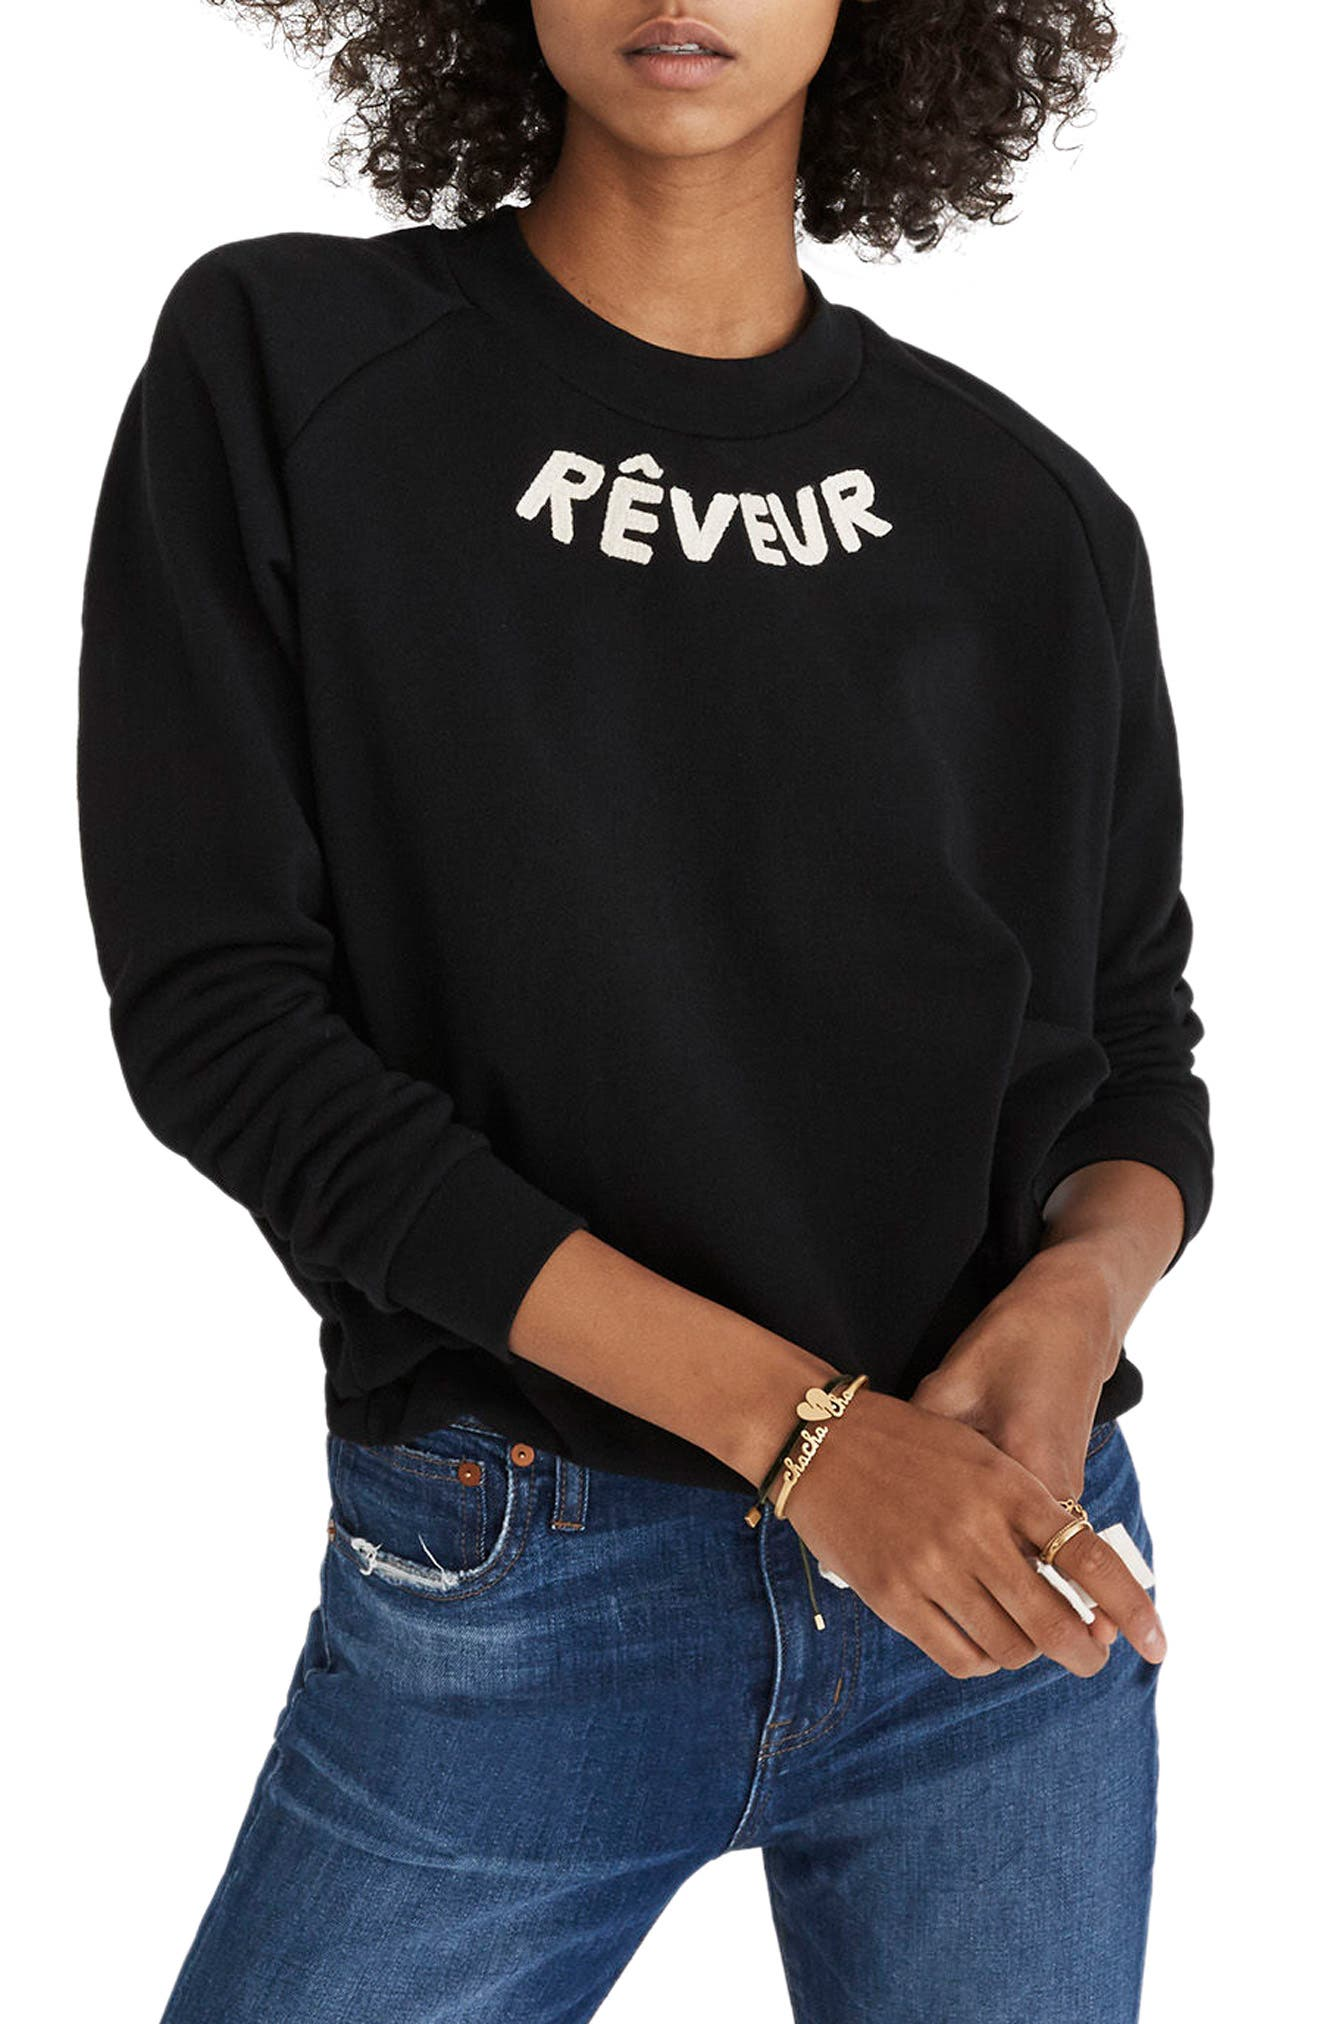 Rêveur Drawstring Sweatshirt,                             Main thumbnail 1, color,